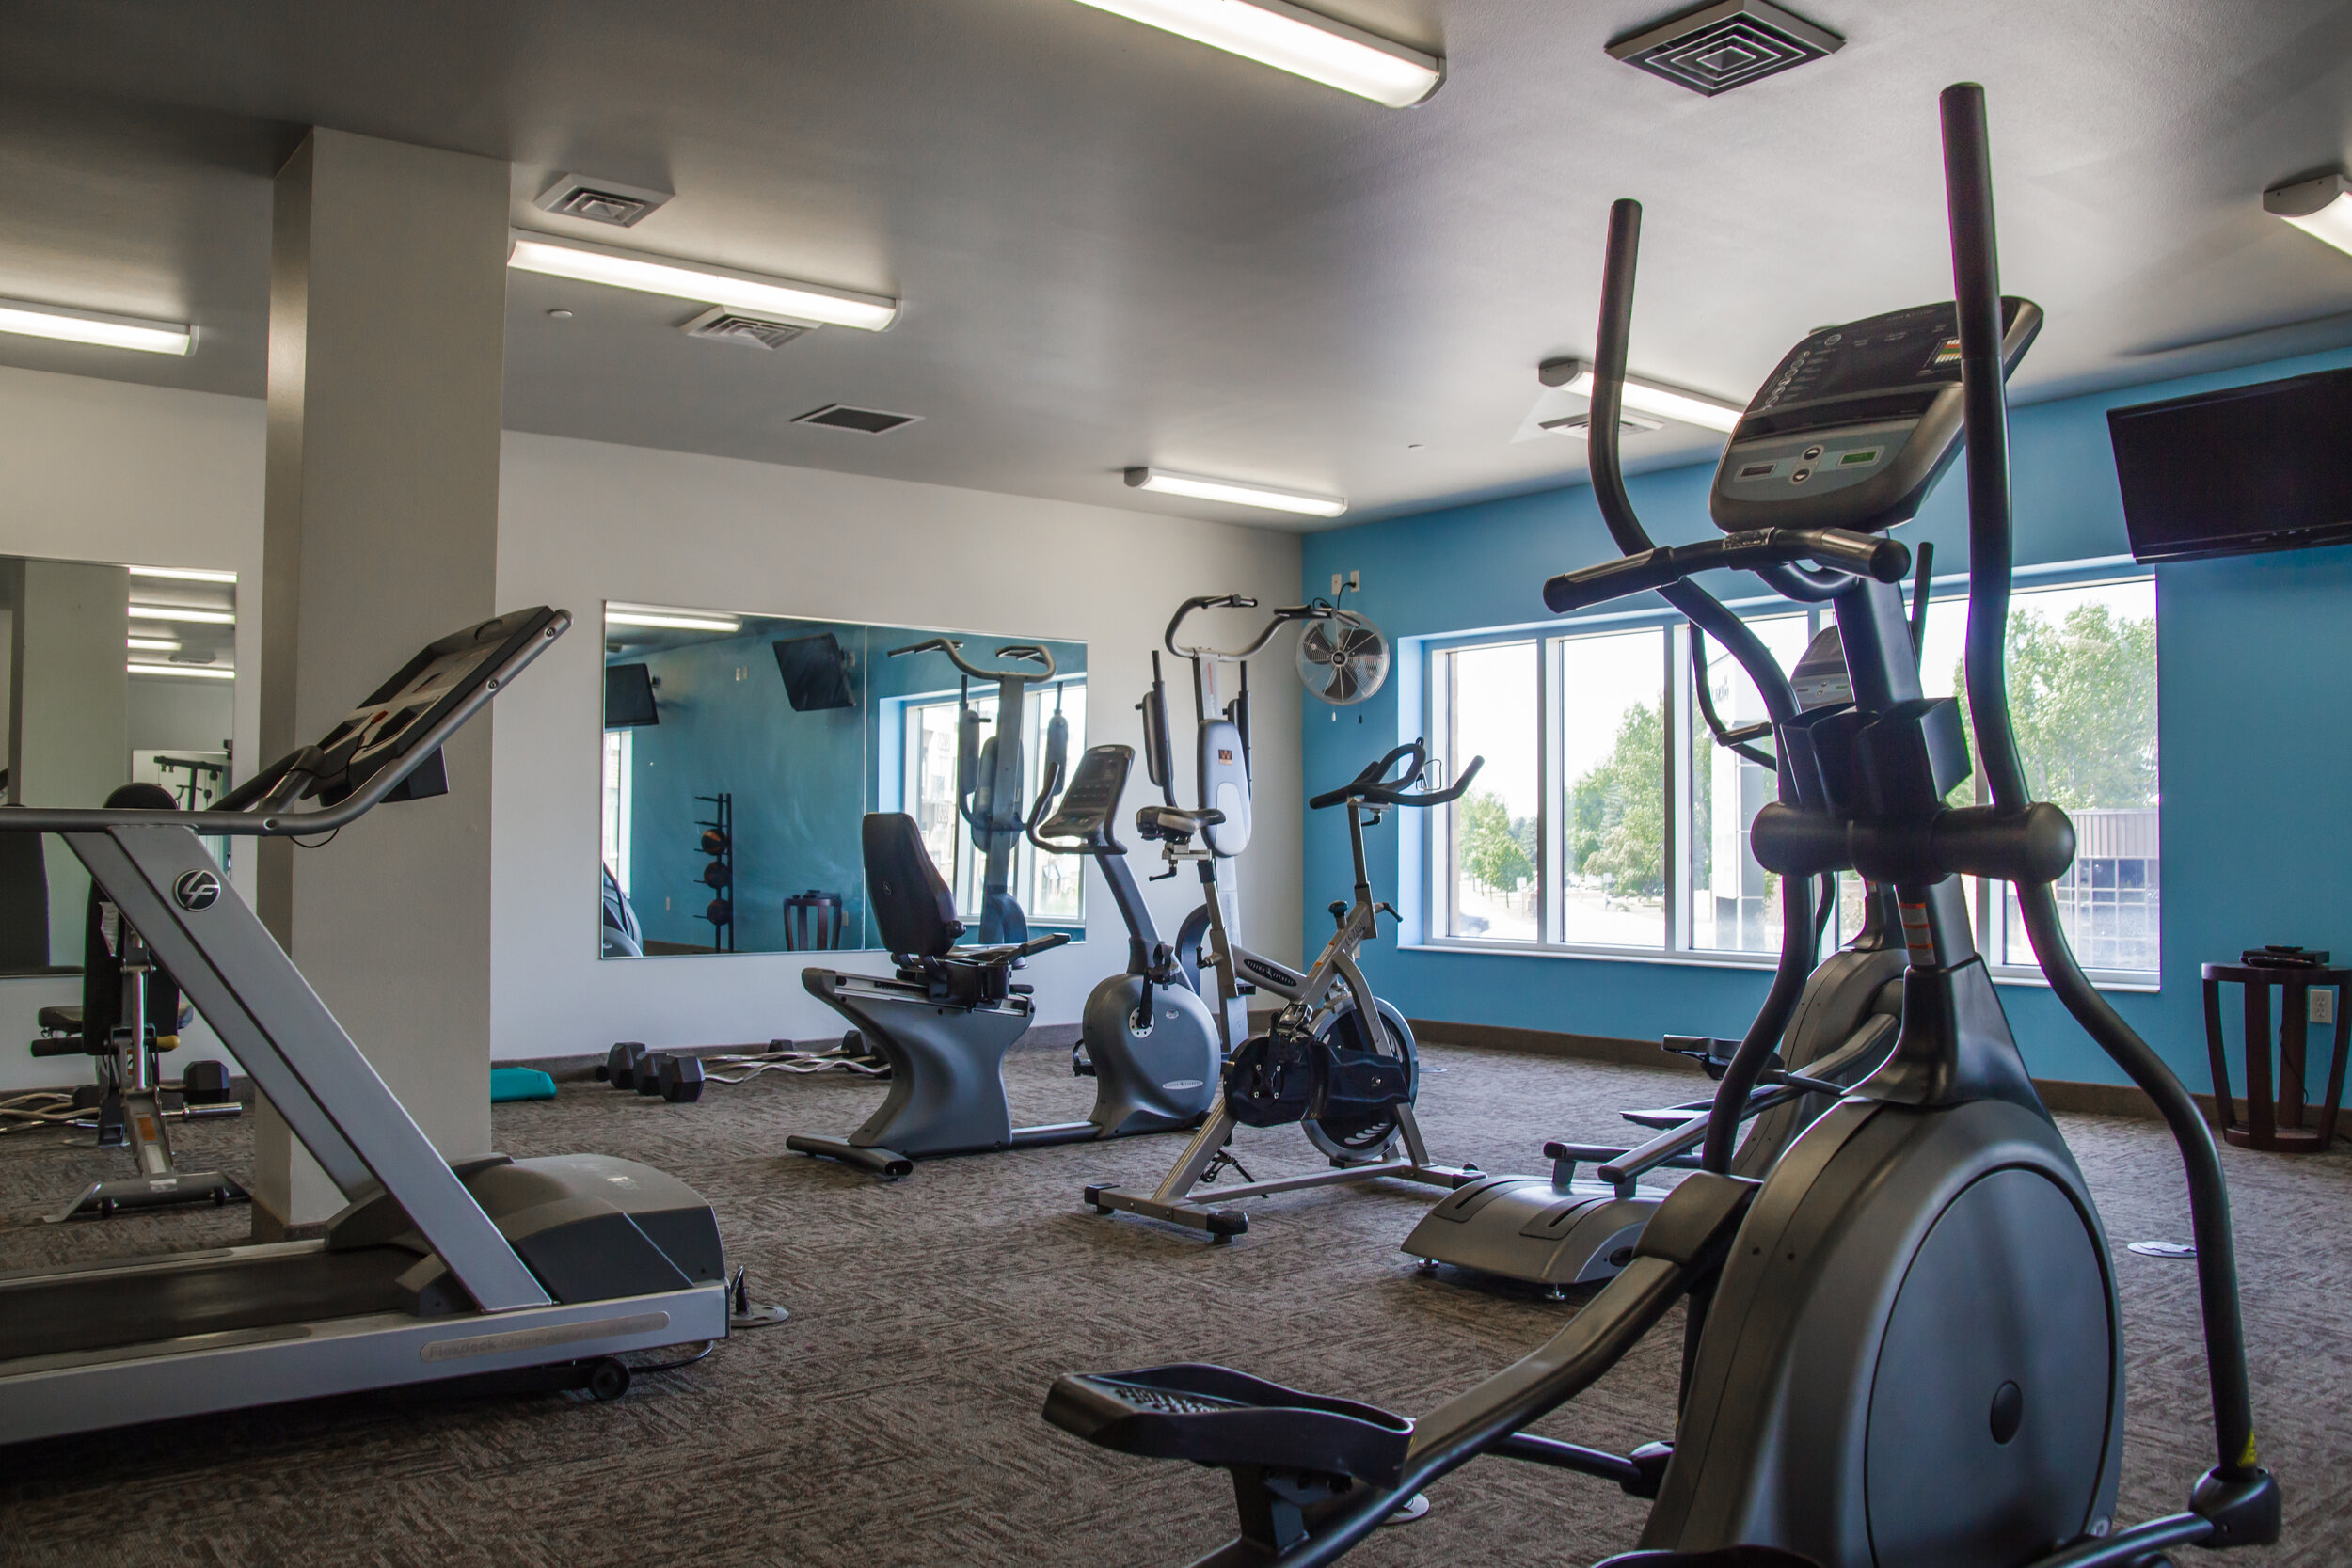 09 Convenient On-Site Fitness Center with Great Equipment Options.jpg